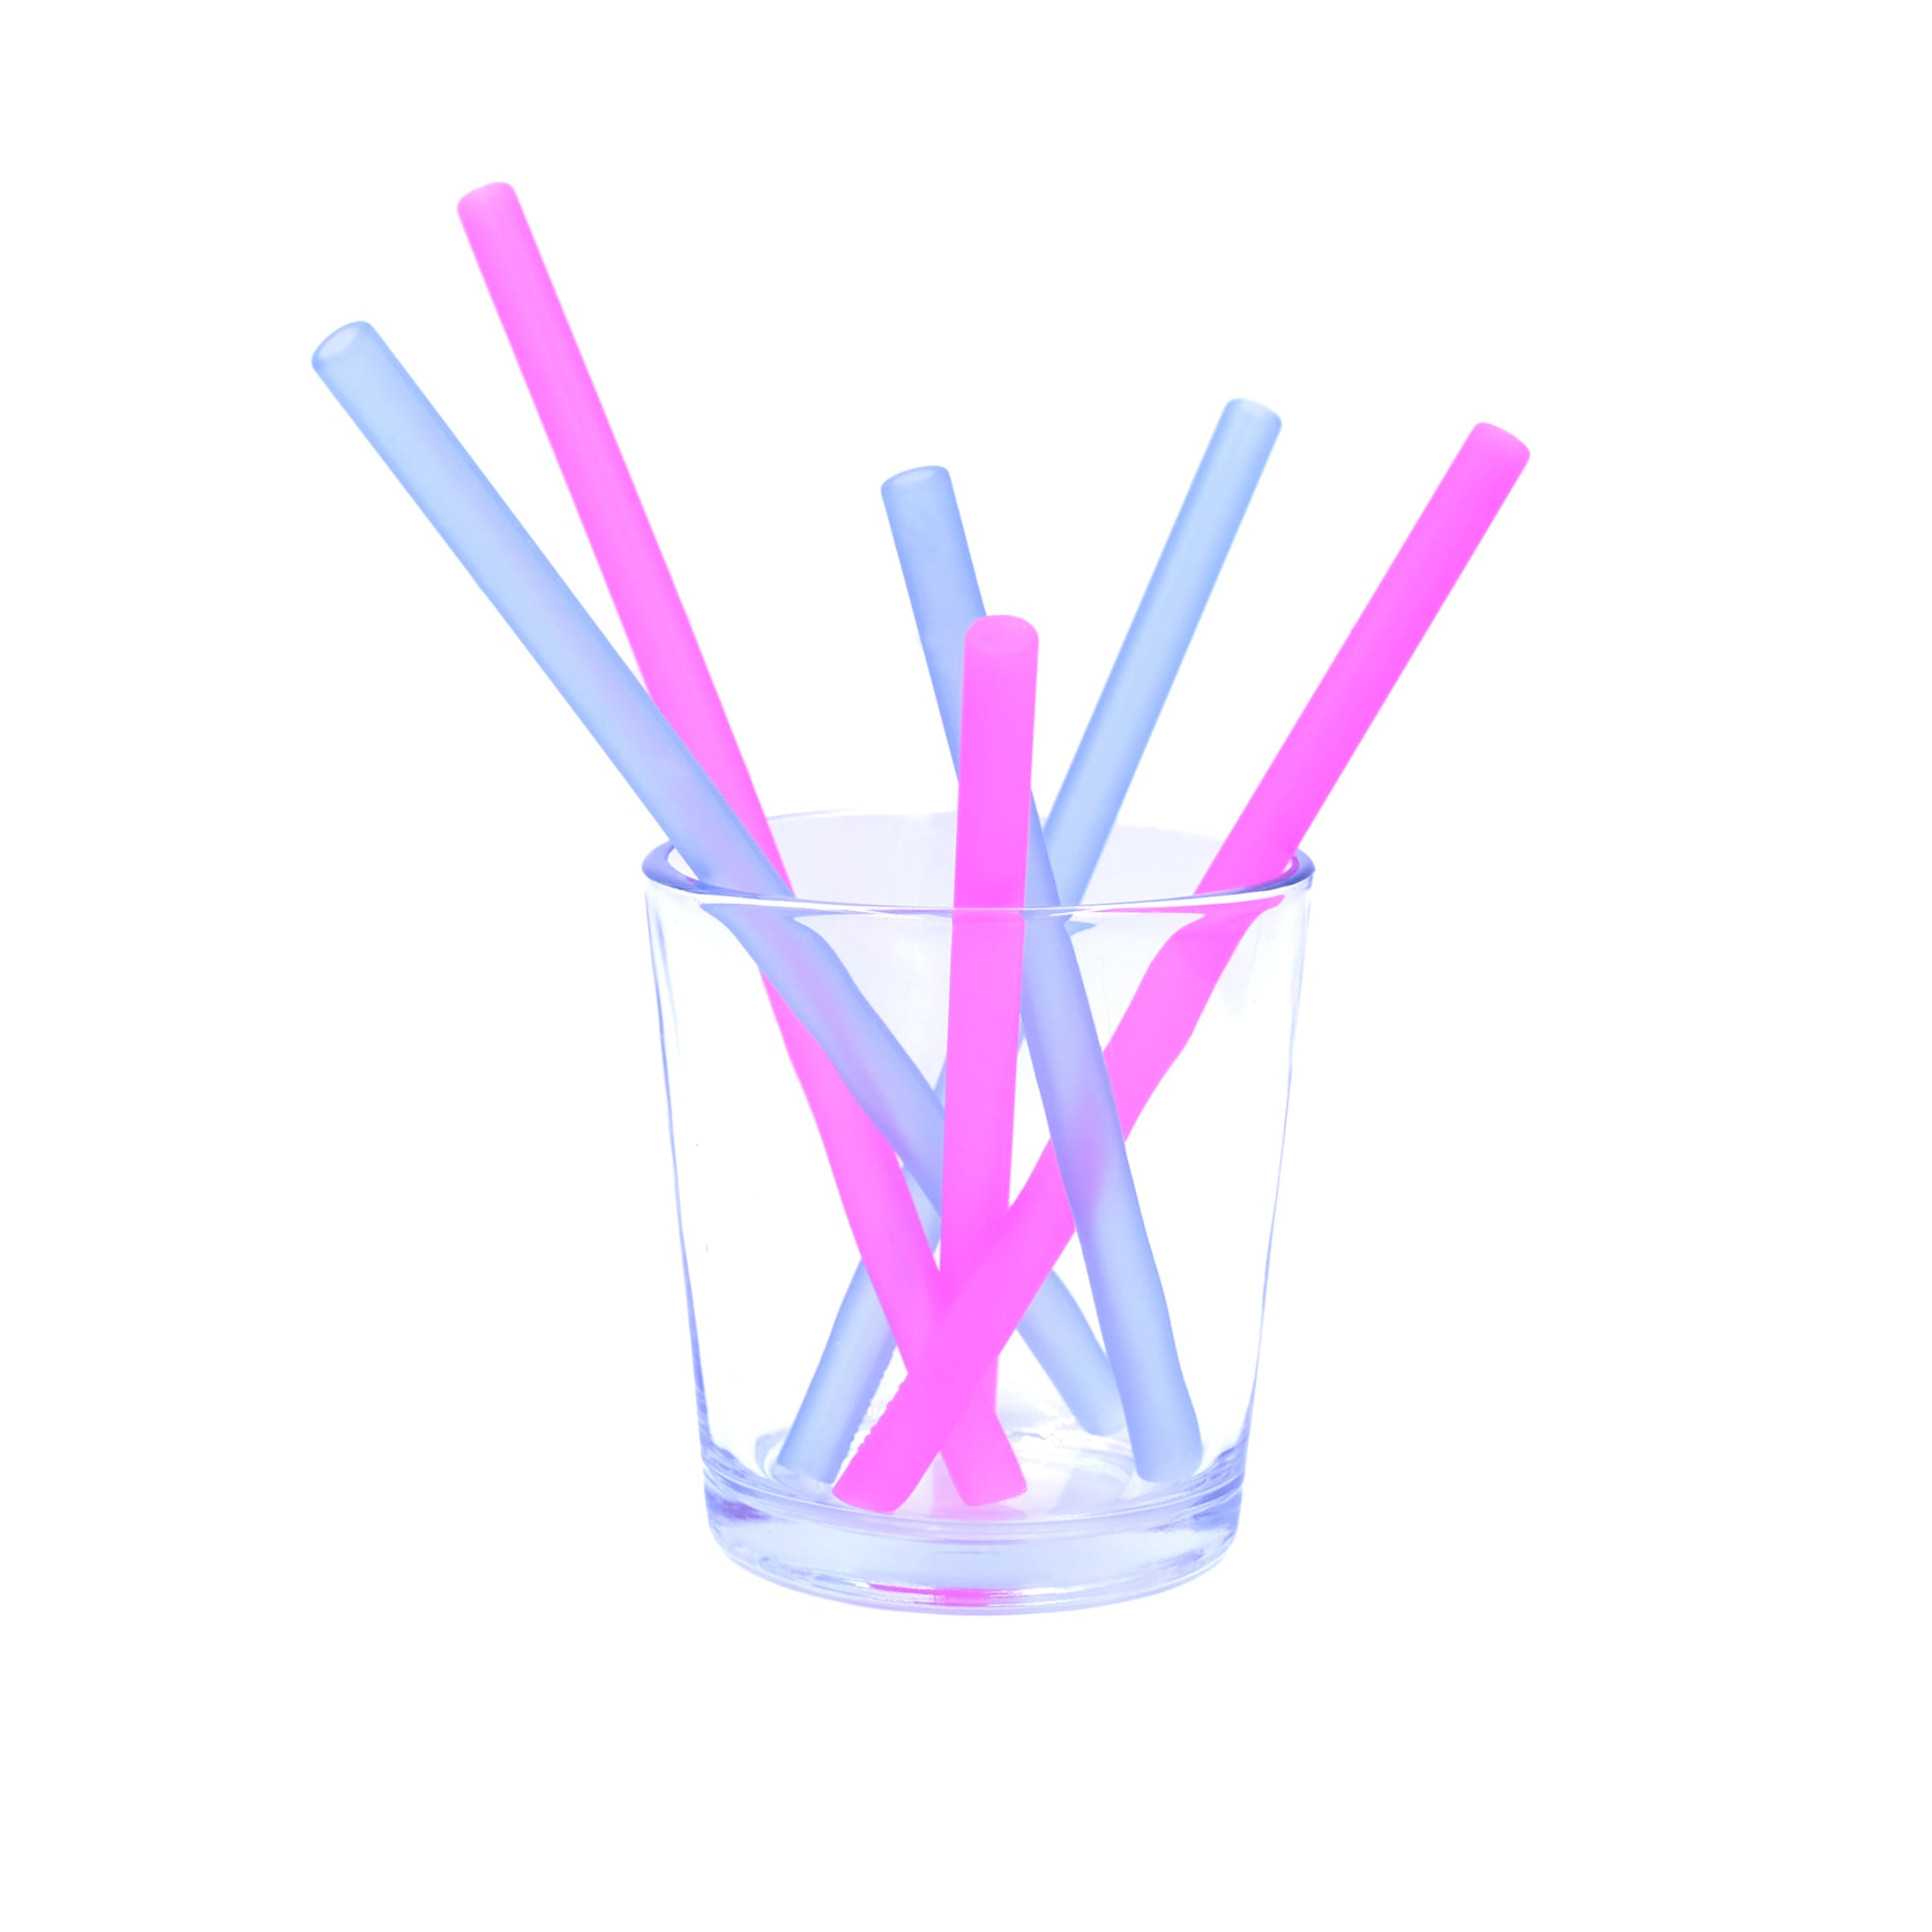 Silikids Family of Reusable Straws 6 pk.